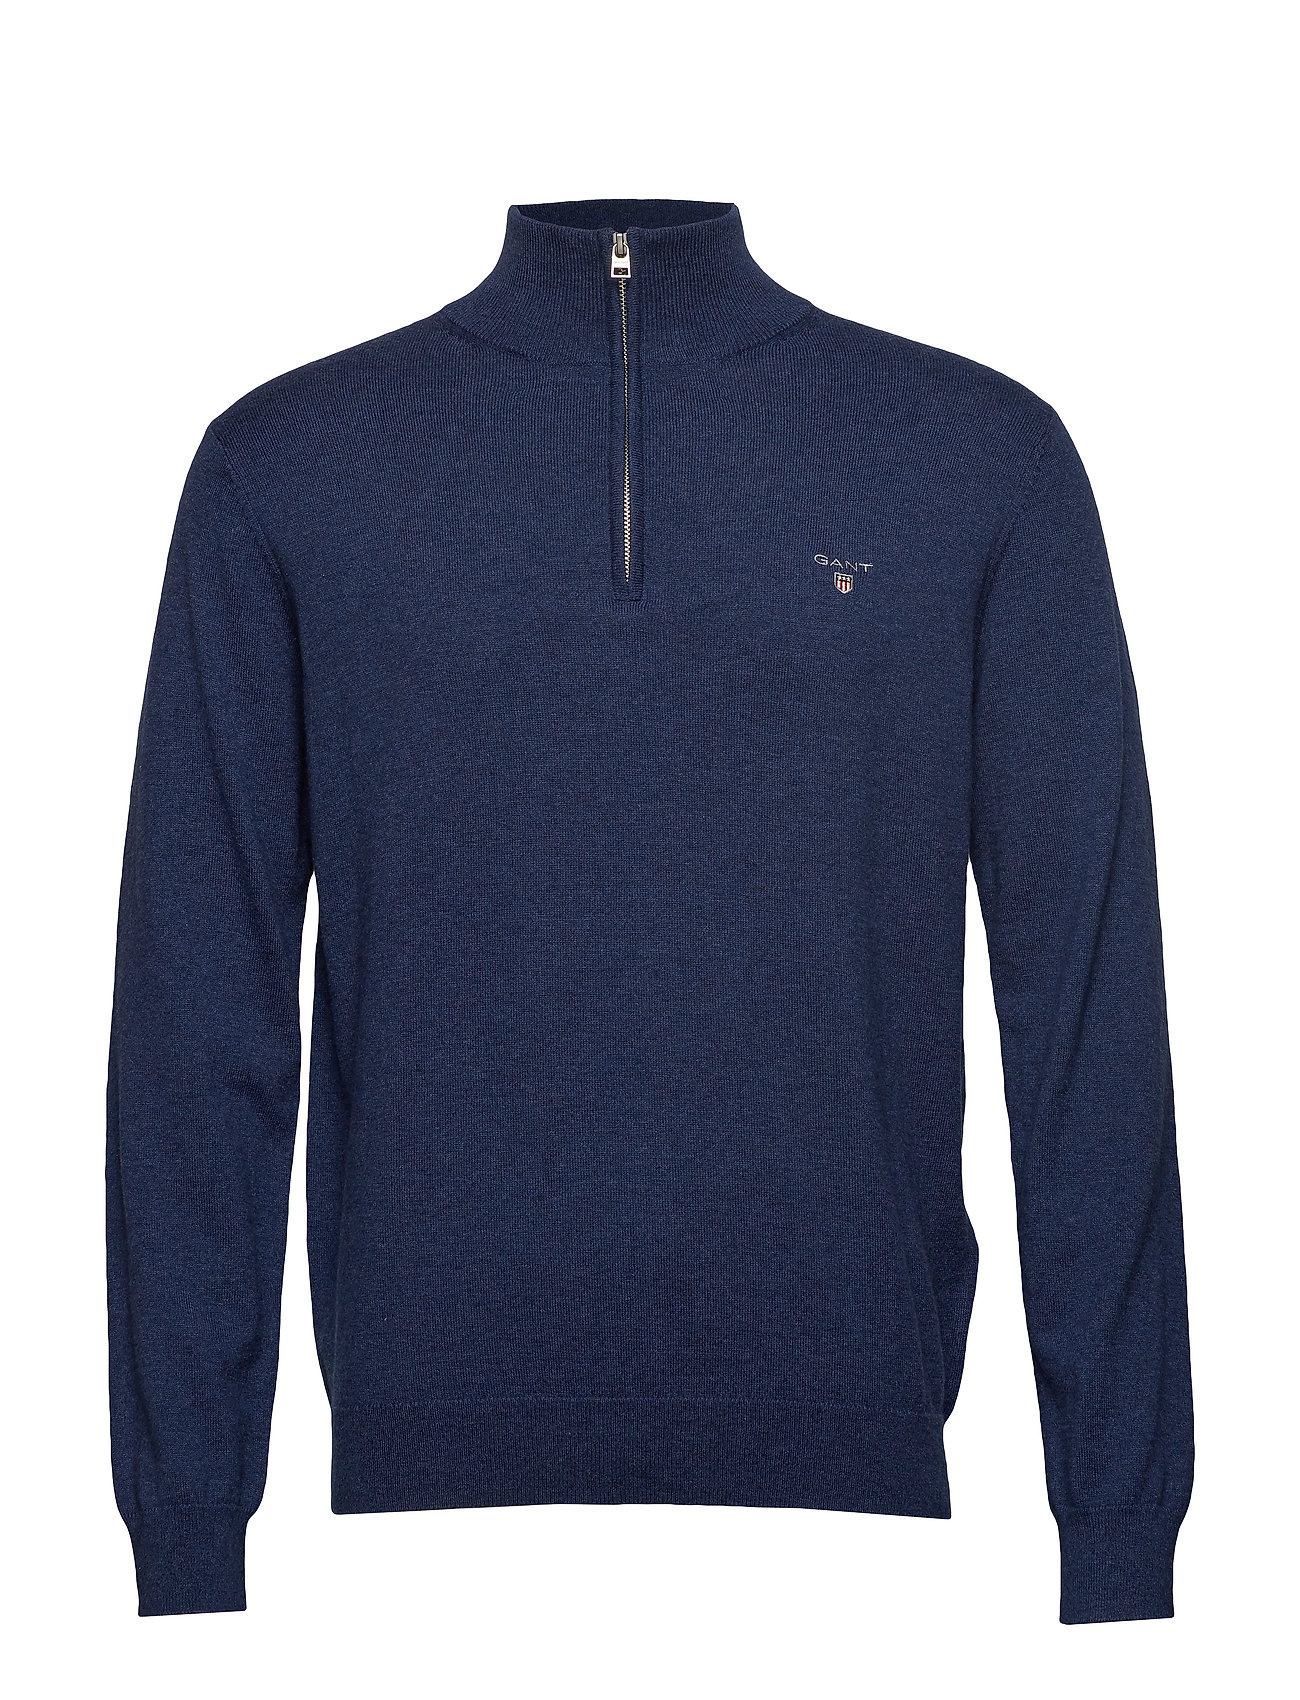 Gant COTTON WOOL HALF ZIP - MARINE MELANGE